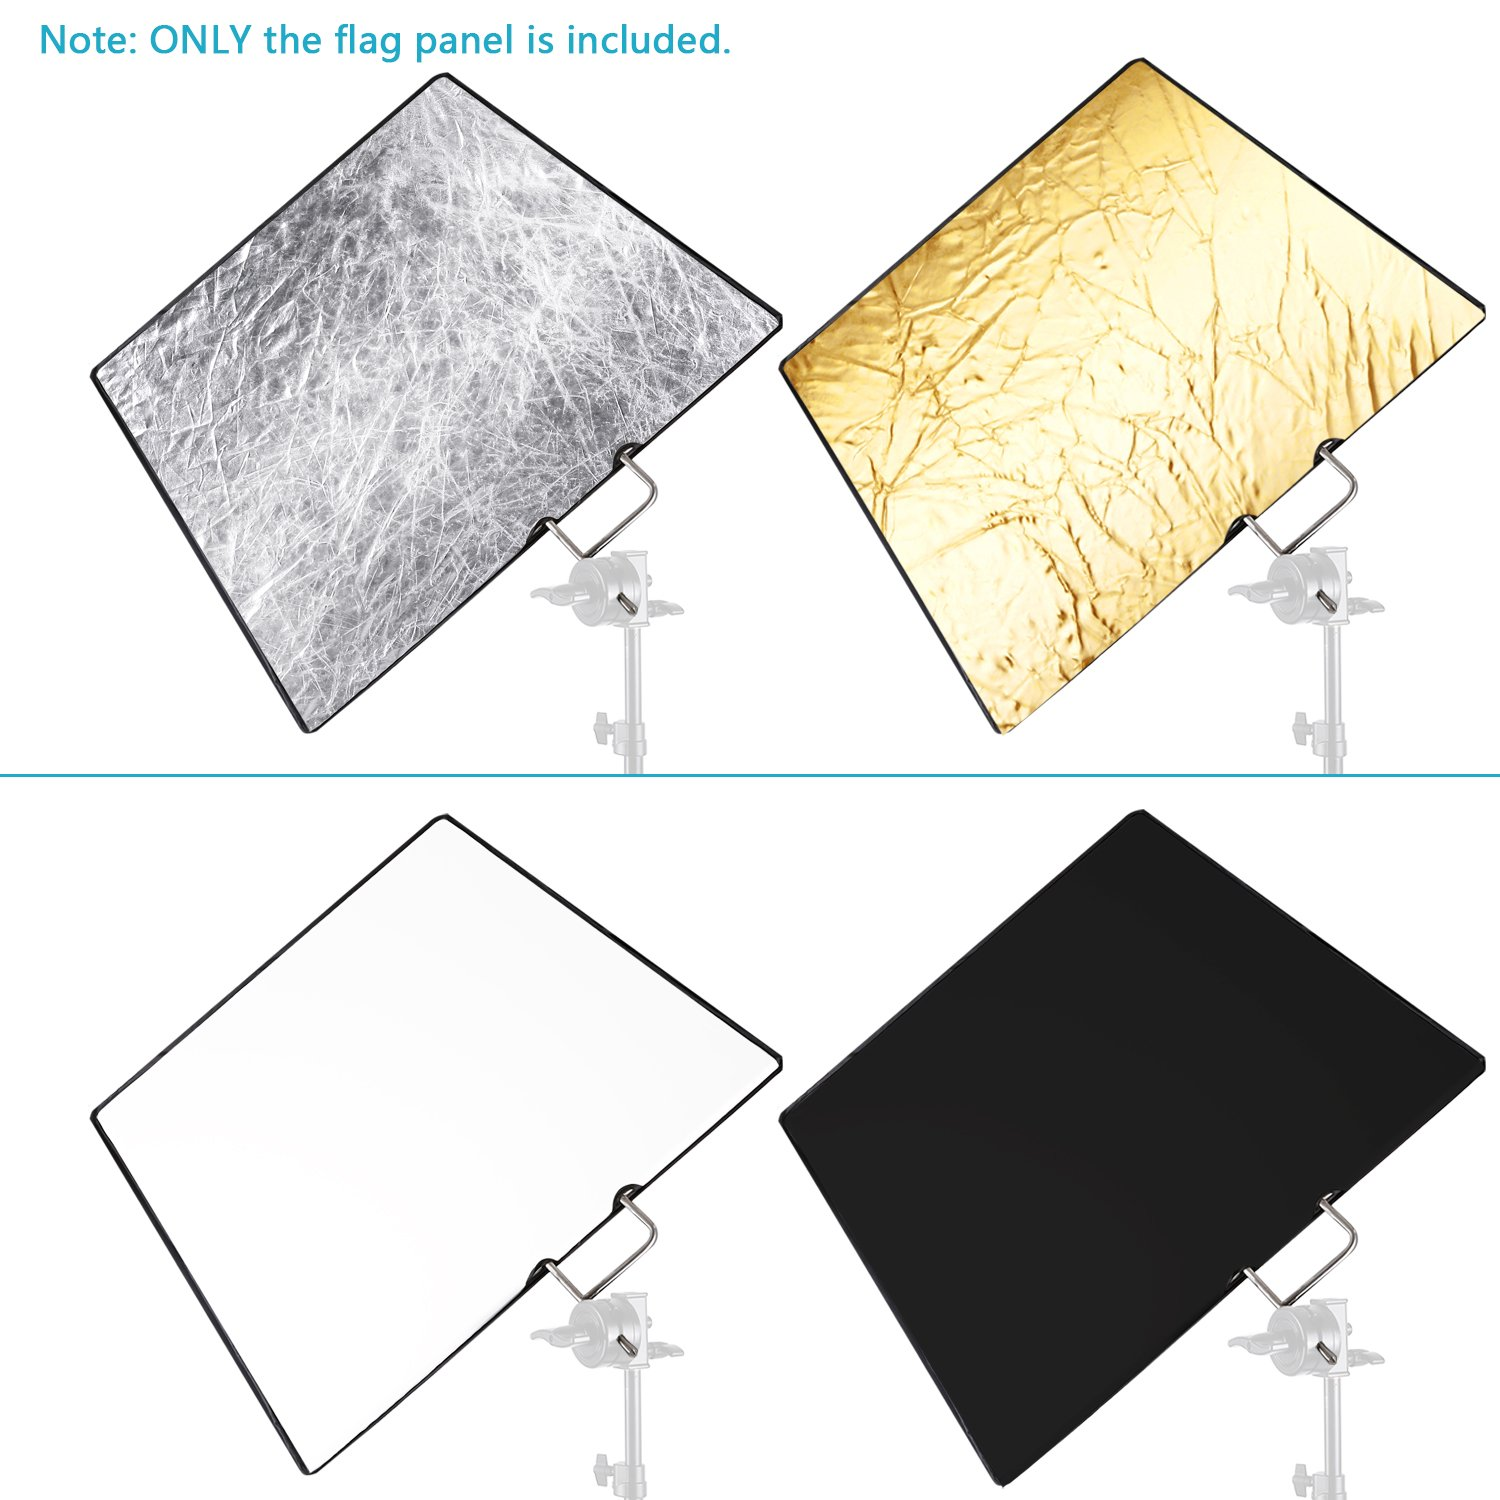 Neewer 30x36 inches 4-in-1 Metal Flag Panel Set Reflector with Soft White, Black, Silver and Gold Cover Cloth for Photo Video Studio Photography by Neewer (Image #3)